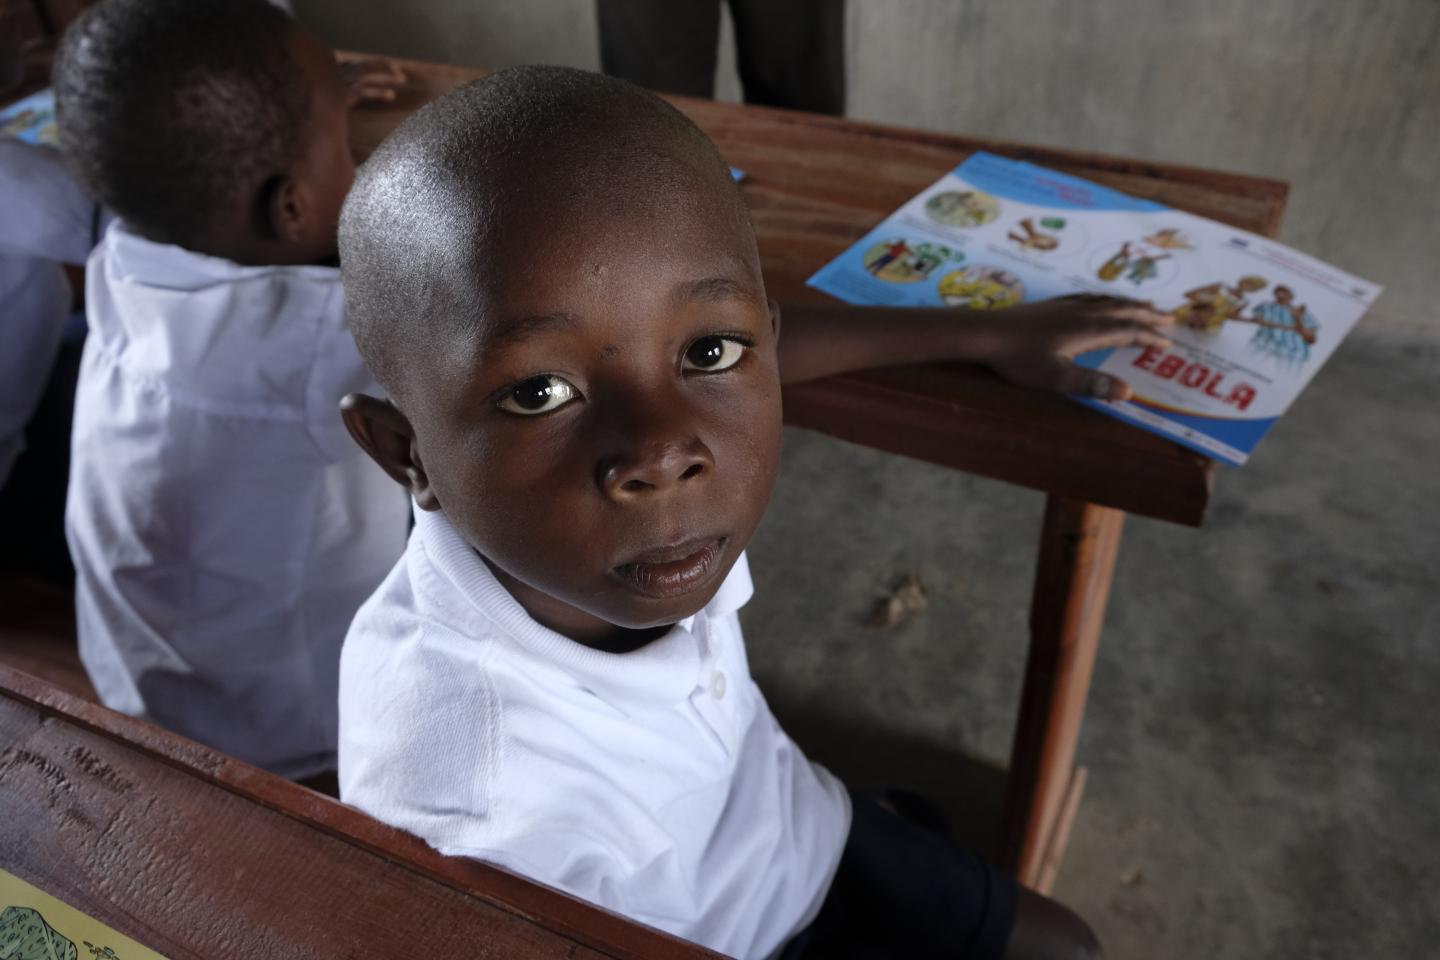 A child in Beni, Democratic Republic of Congo, learns about Ebola